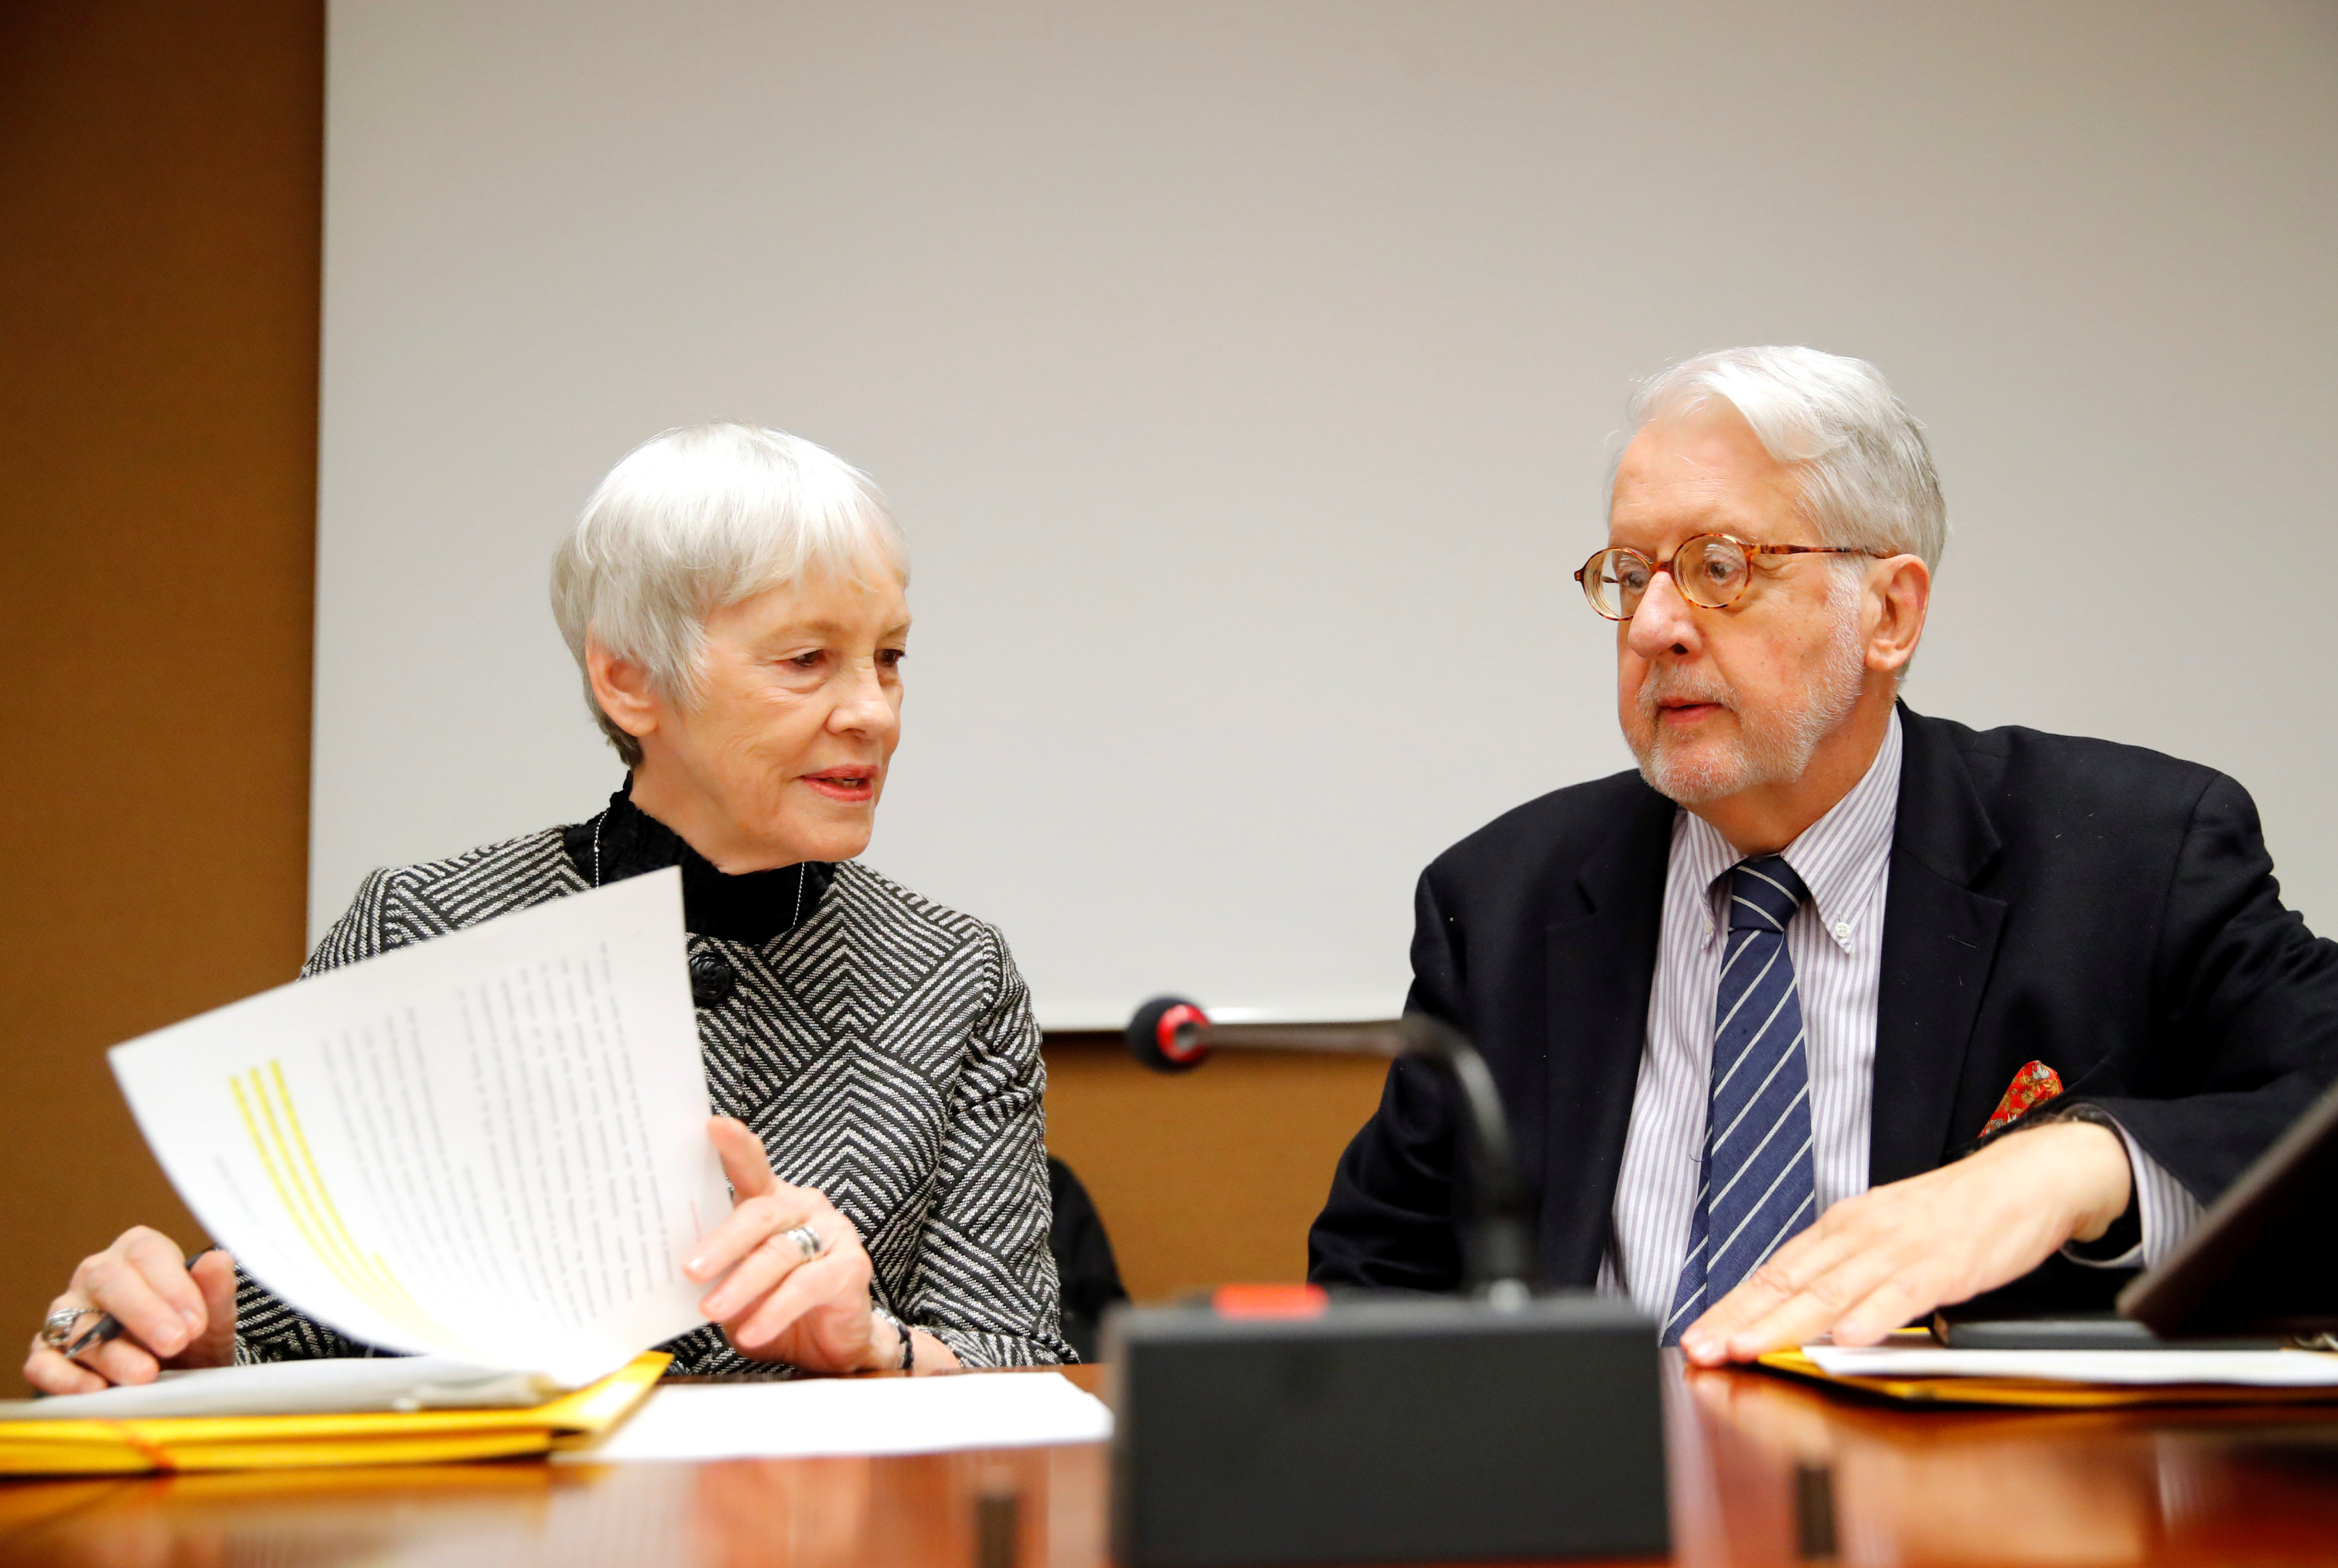 Paulo Pinheiro, Chairperson of the Commission of Inquiry on Syria (R), arrives with Karen Abuzayd, member of the Commission before the launch of their report on sexual and gender-based violence in Syria at the United Nations office in Geneva, Switzerland March 15, 2018. REUTERS/Denis Balibouse